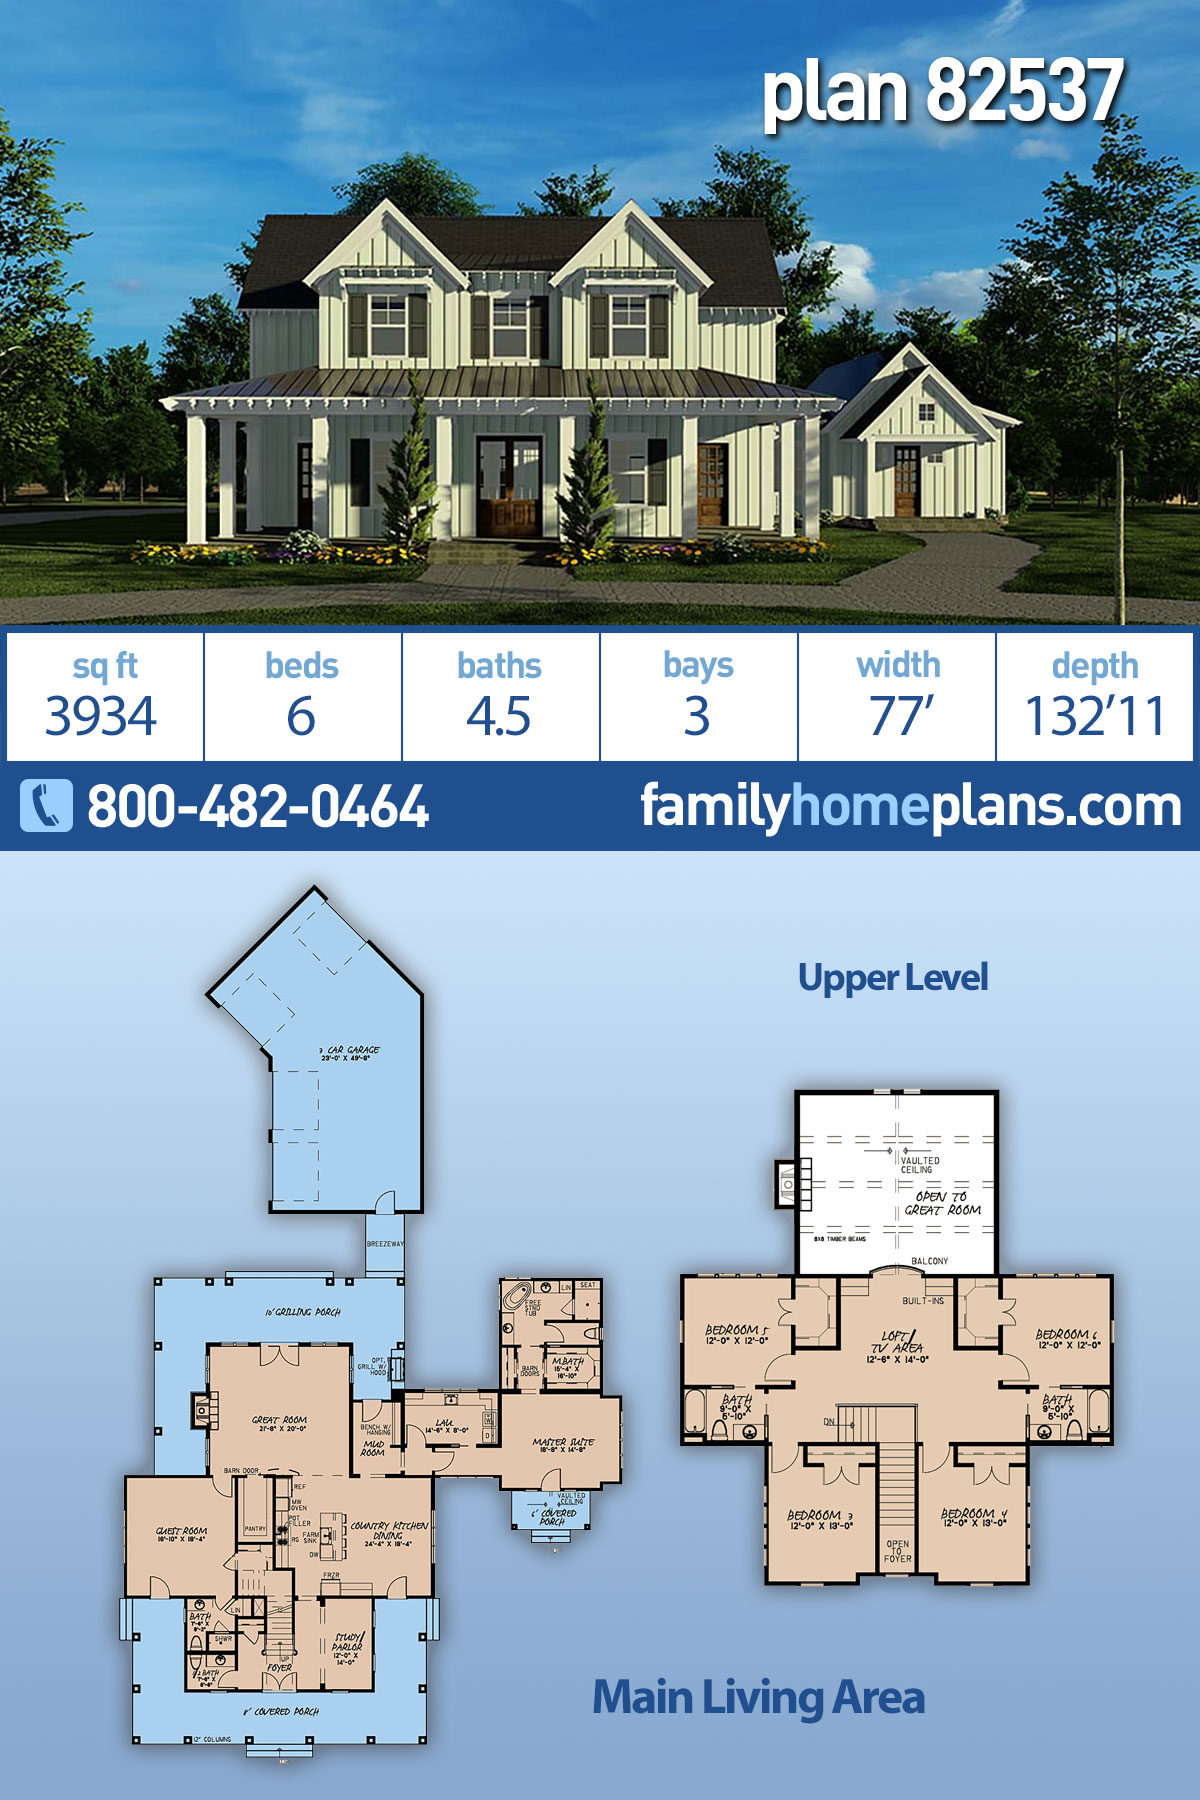 Bungalow, Country, Craftsman, Farmhouse House Plan 82537 with 6 Beds, 5 Baths, 3 Car Garage